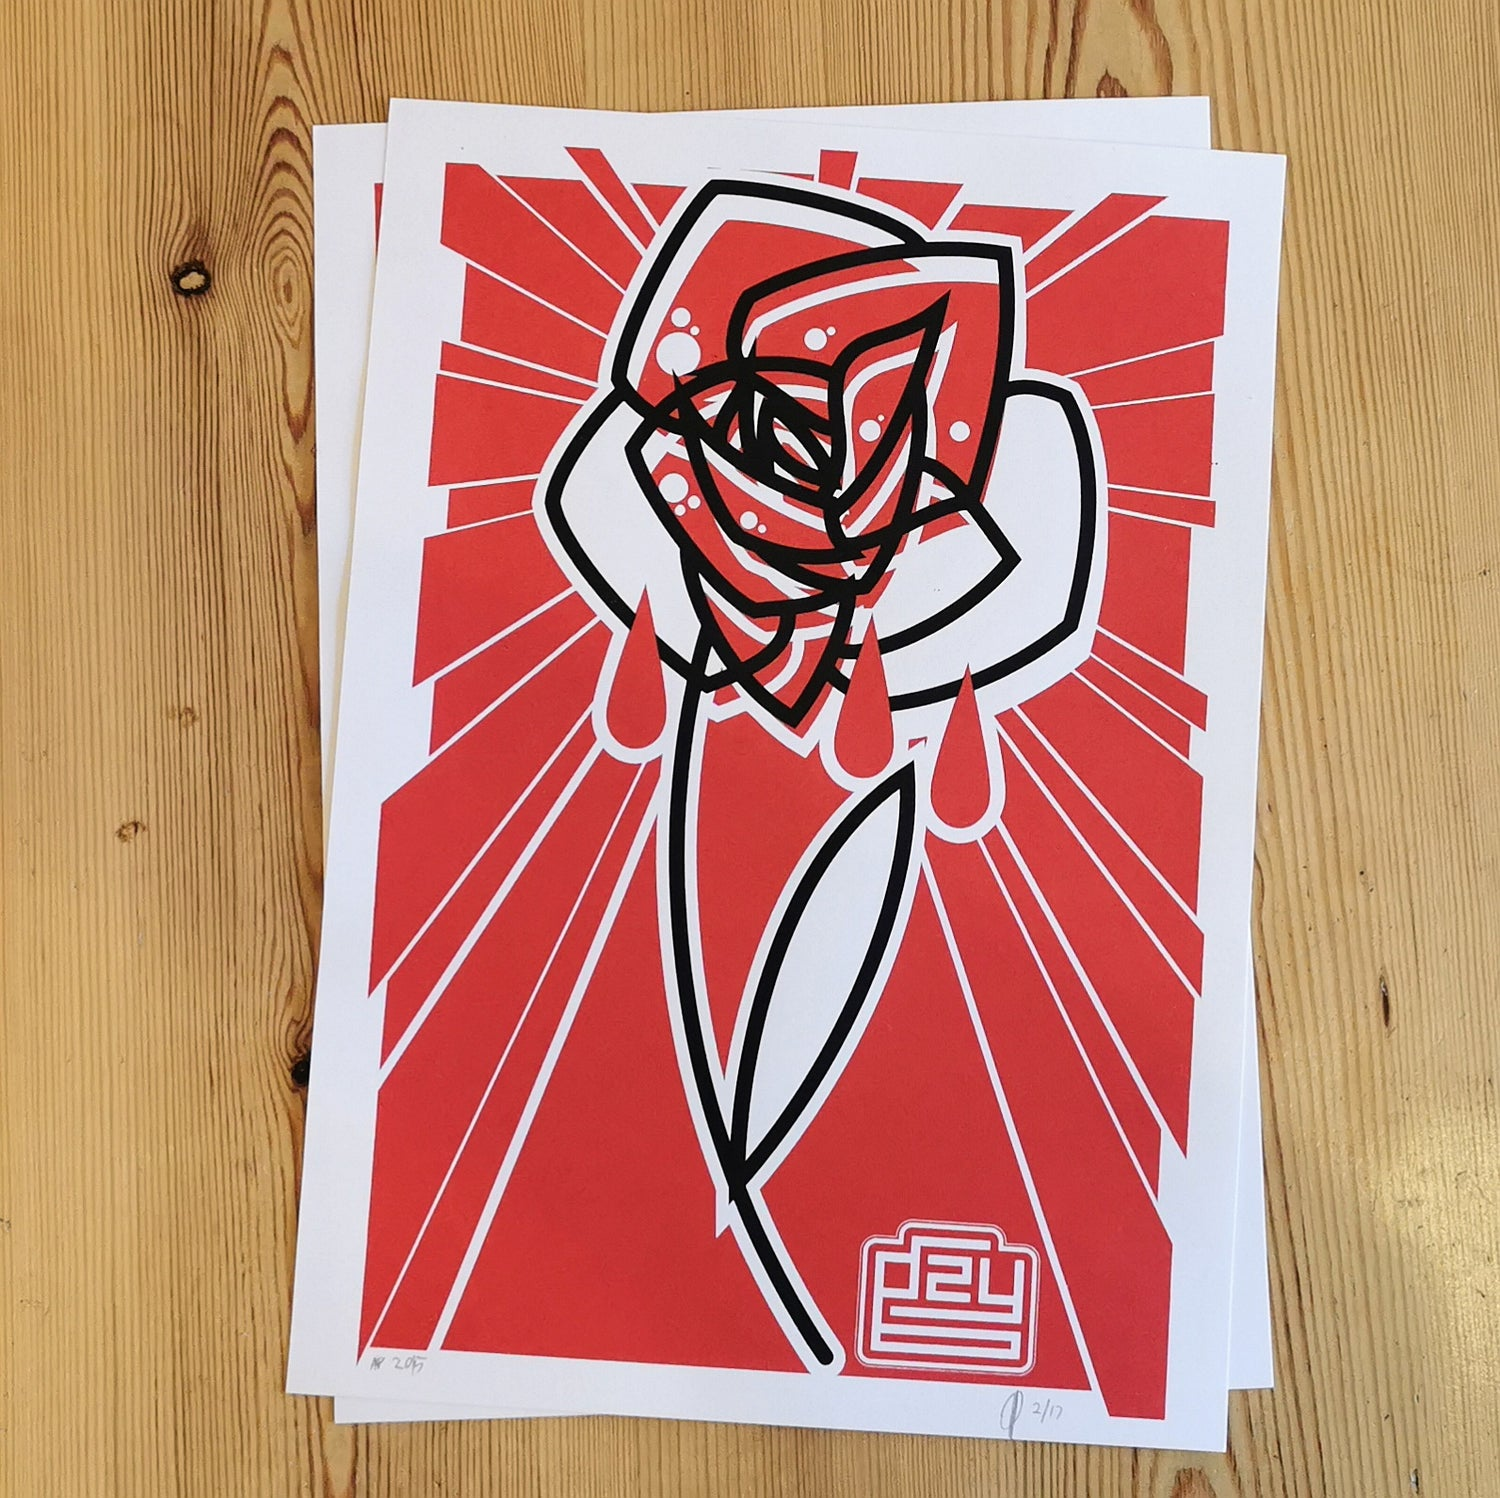 Gzy Ex Silesia - abstract rose - screen print LAST TWO! LOW NUMBERS!